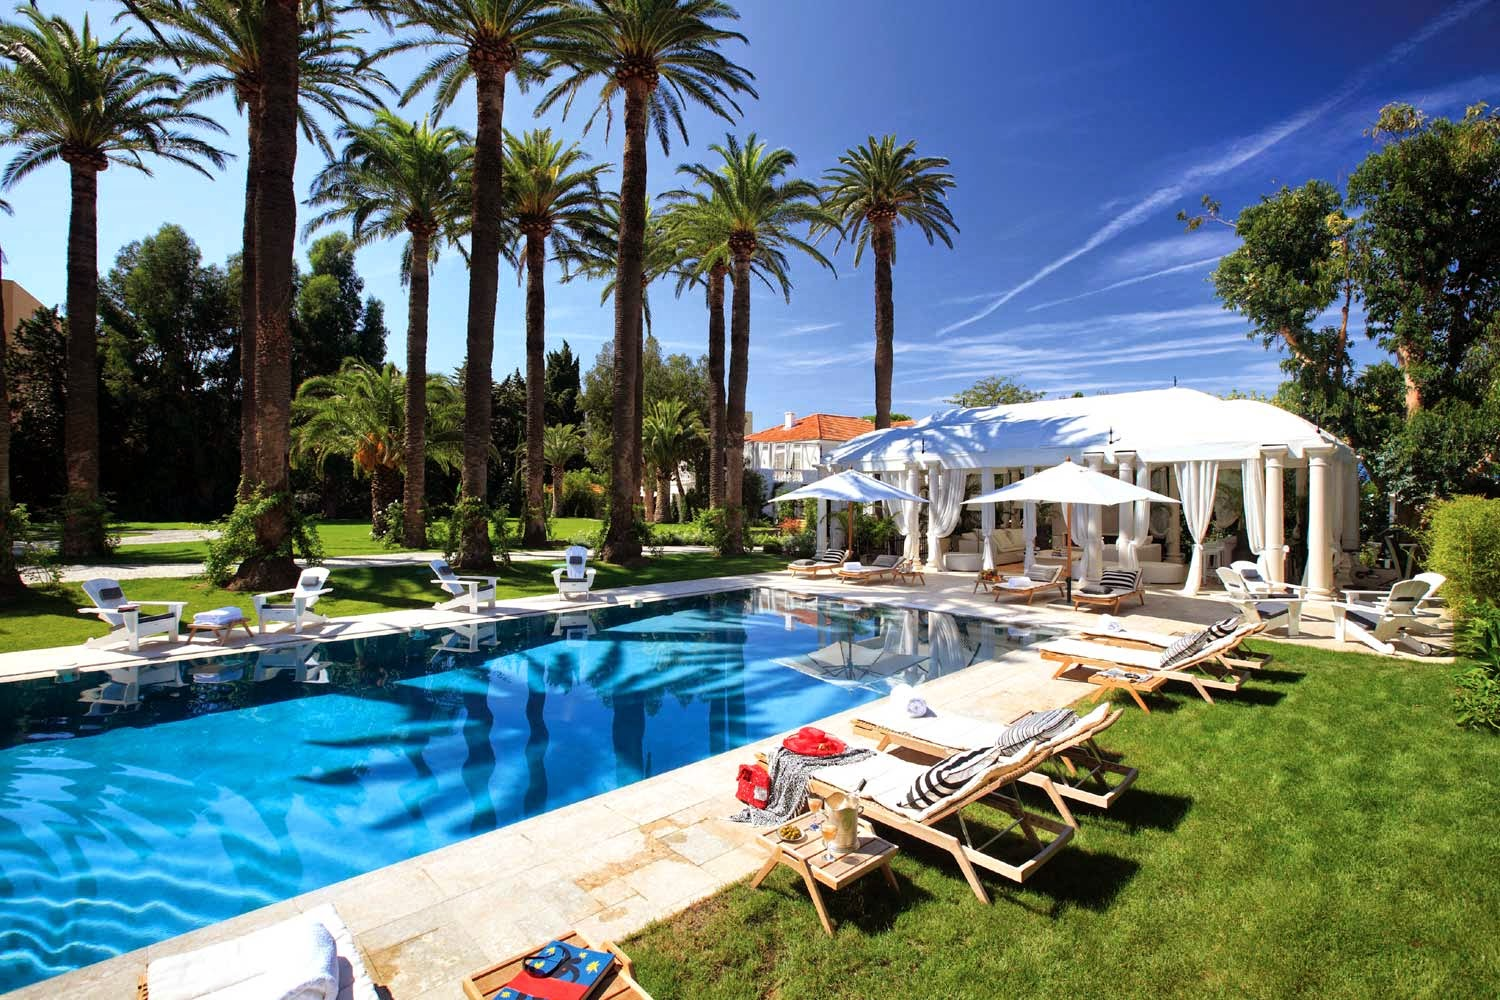 Cote Du0027Azur Villas Are Delighted To Offer You A Selection Of The Prestige  Villas In The South Of France And Provence.